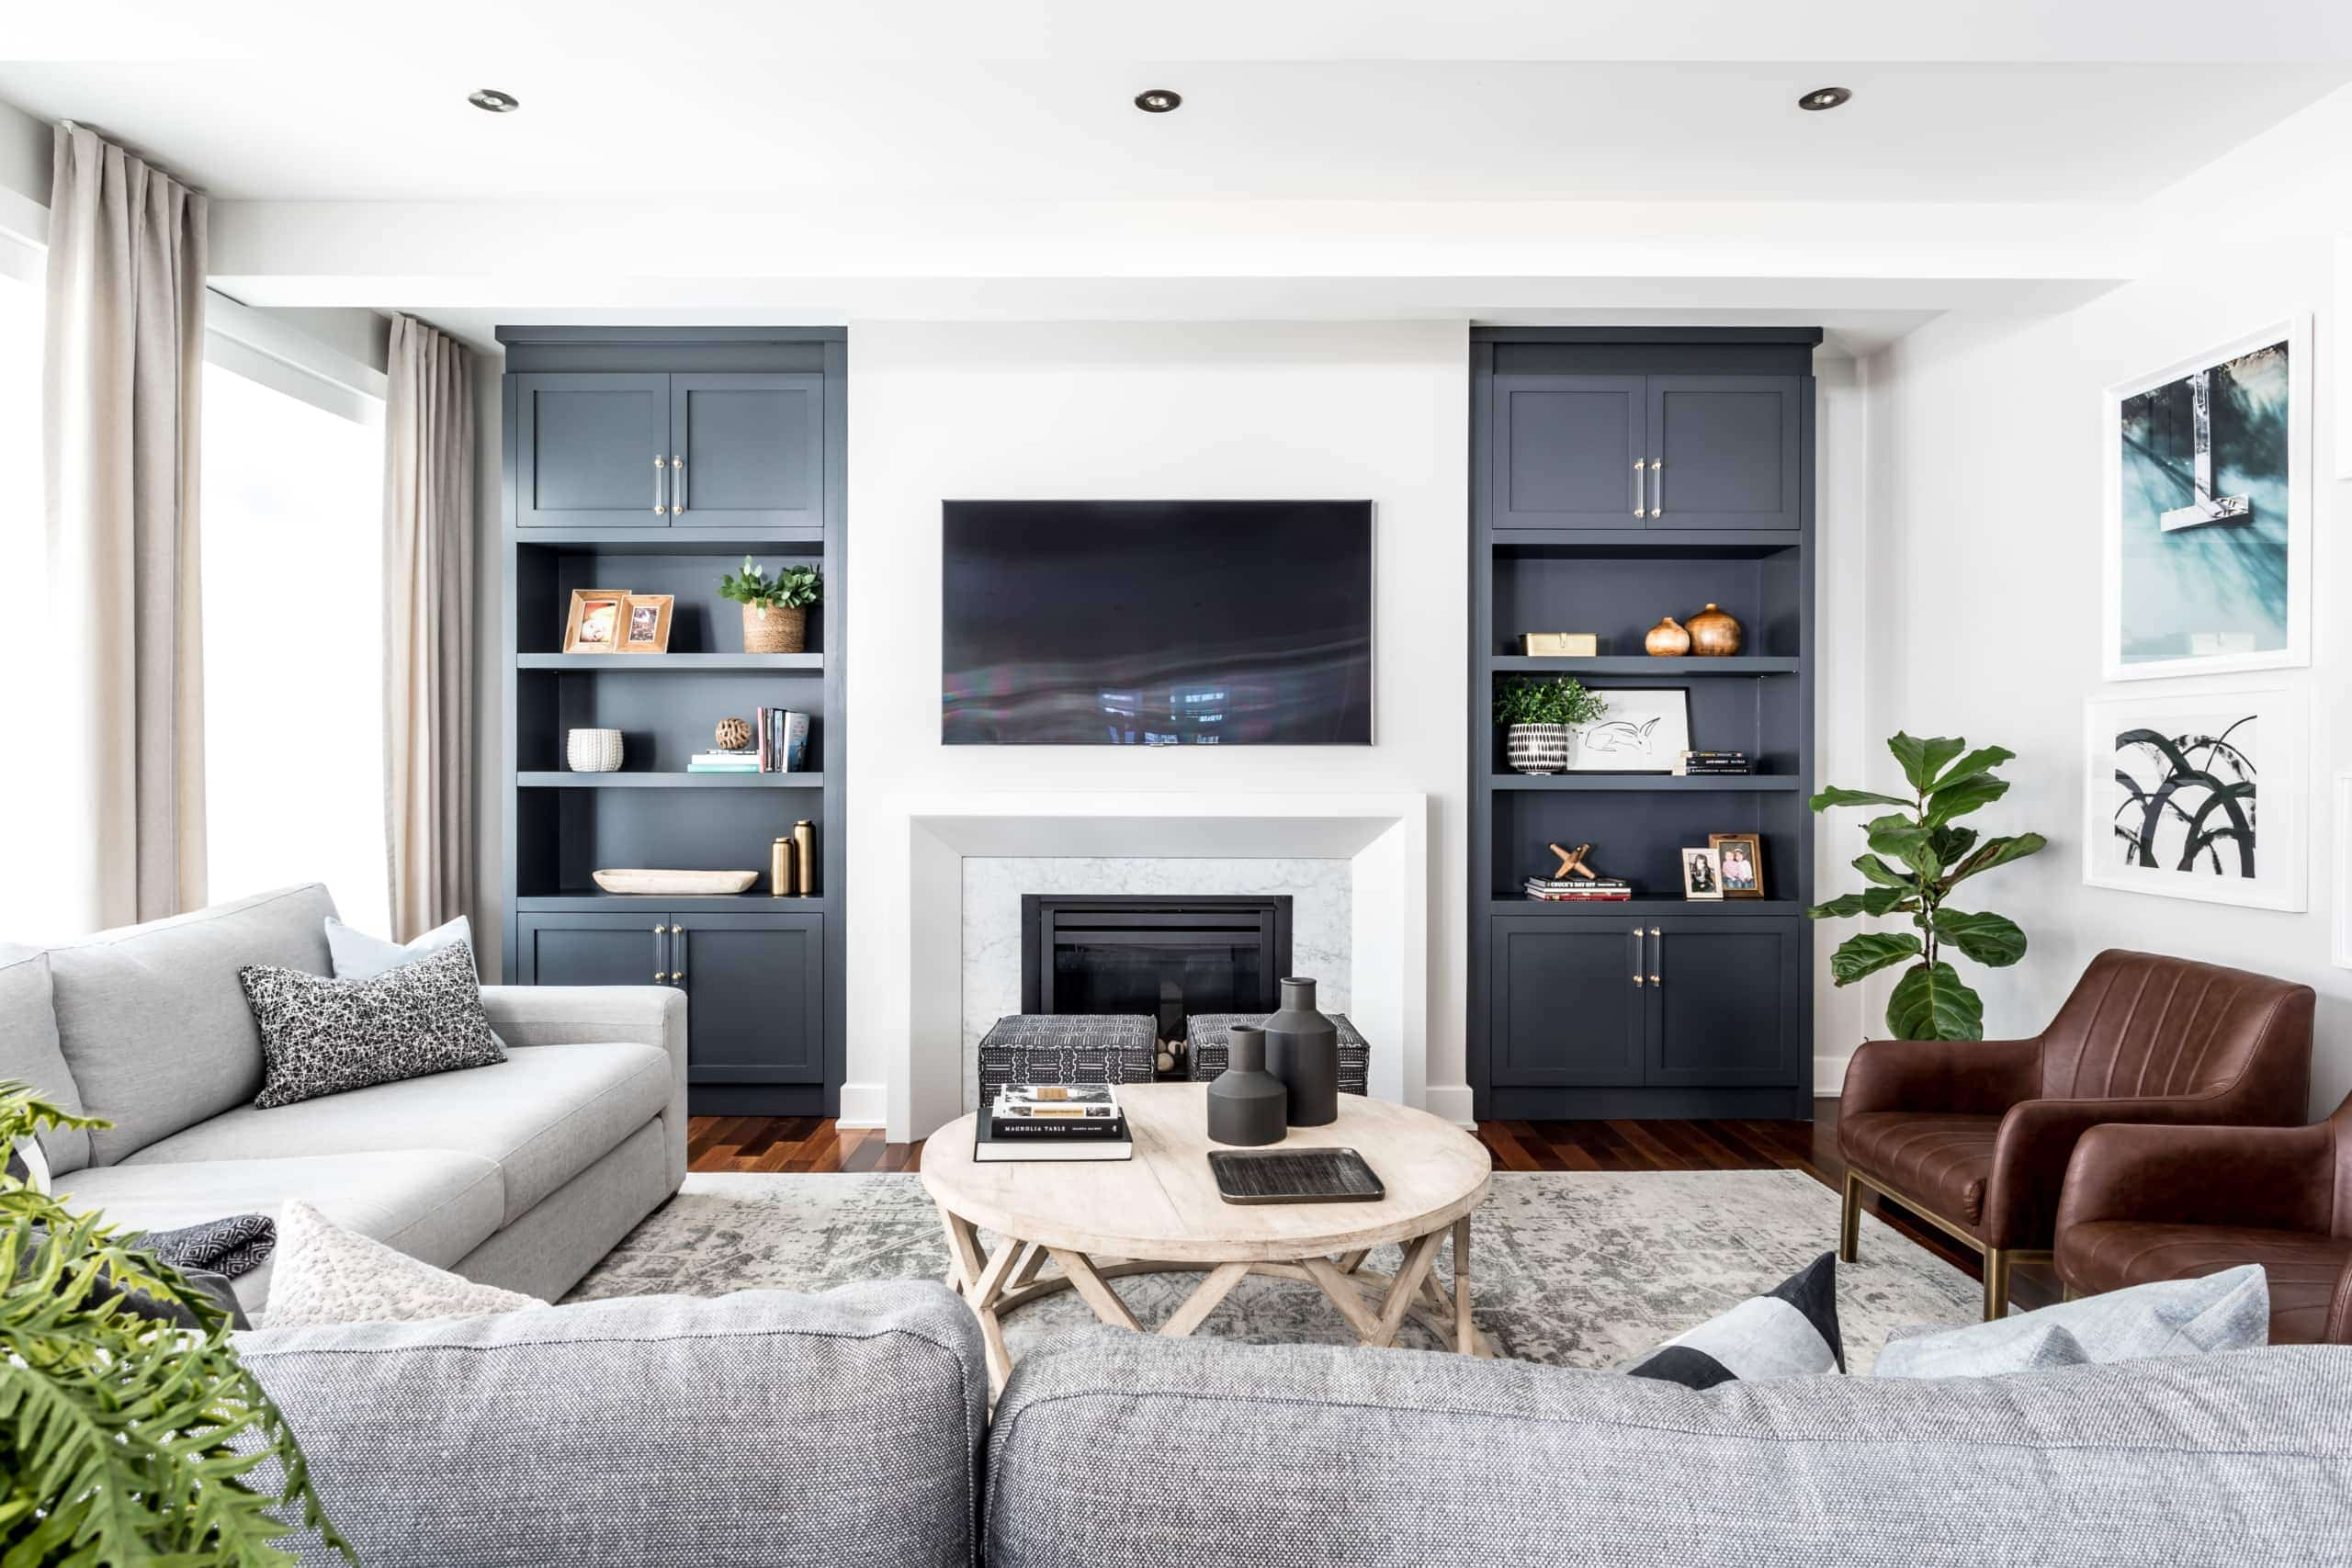 Two blue bookcases flanking the fireplace within the living room